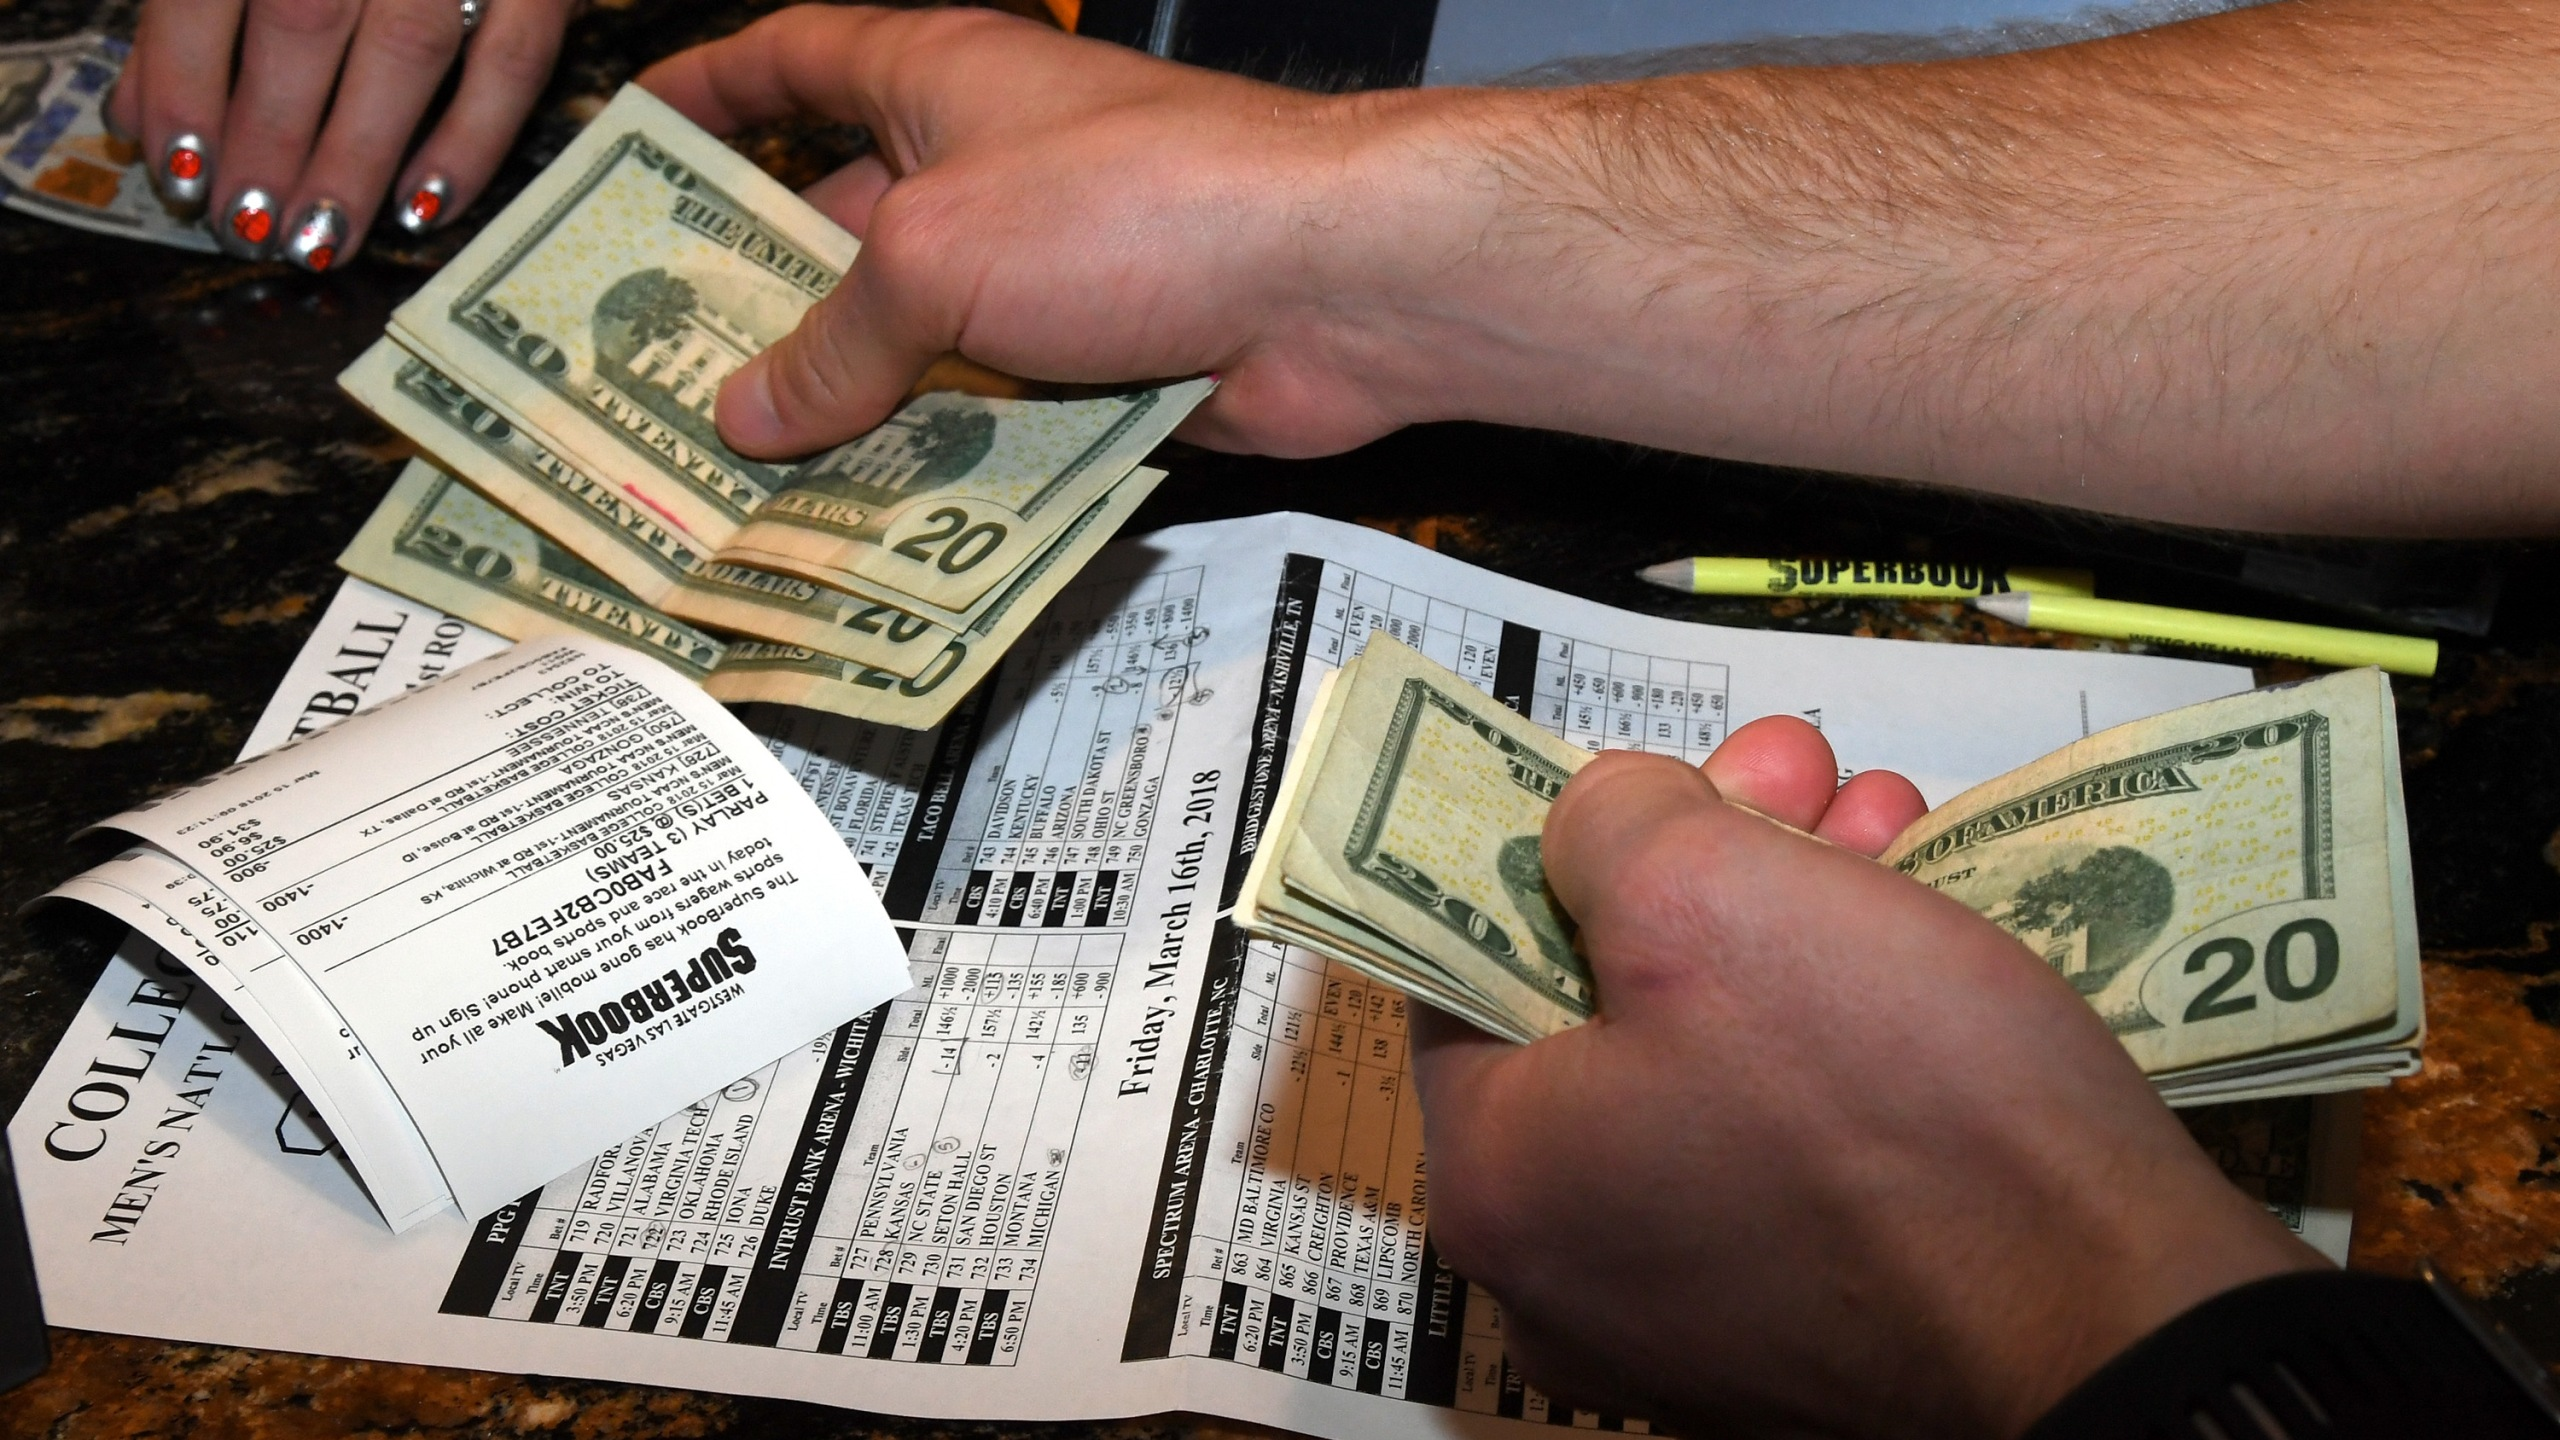 Jake Sindberg of Wisconsin makes bets during a viewing party for the NCAA Men's College Basketball Tournament inside the Westgate Las Vegas Resort & Casino in Las Vegas on March 15, 2018. (Credit: Ethan Miller / Getty Images)